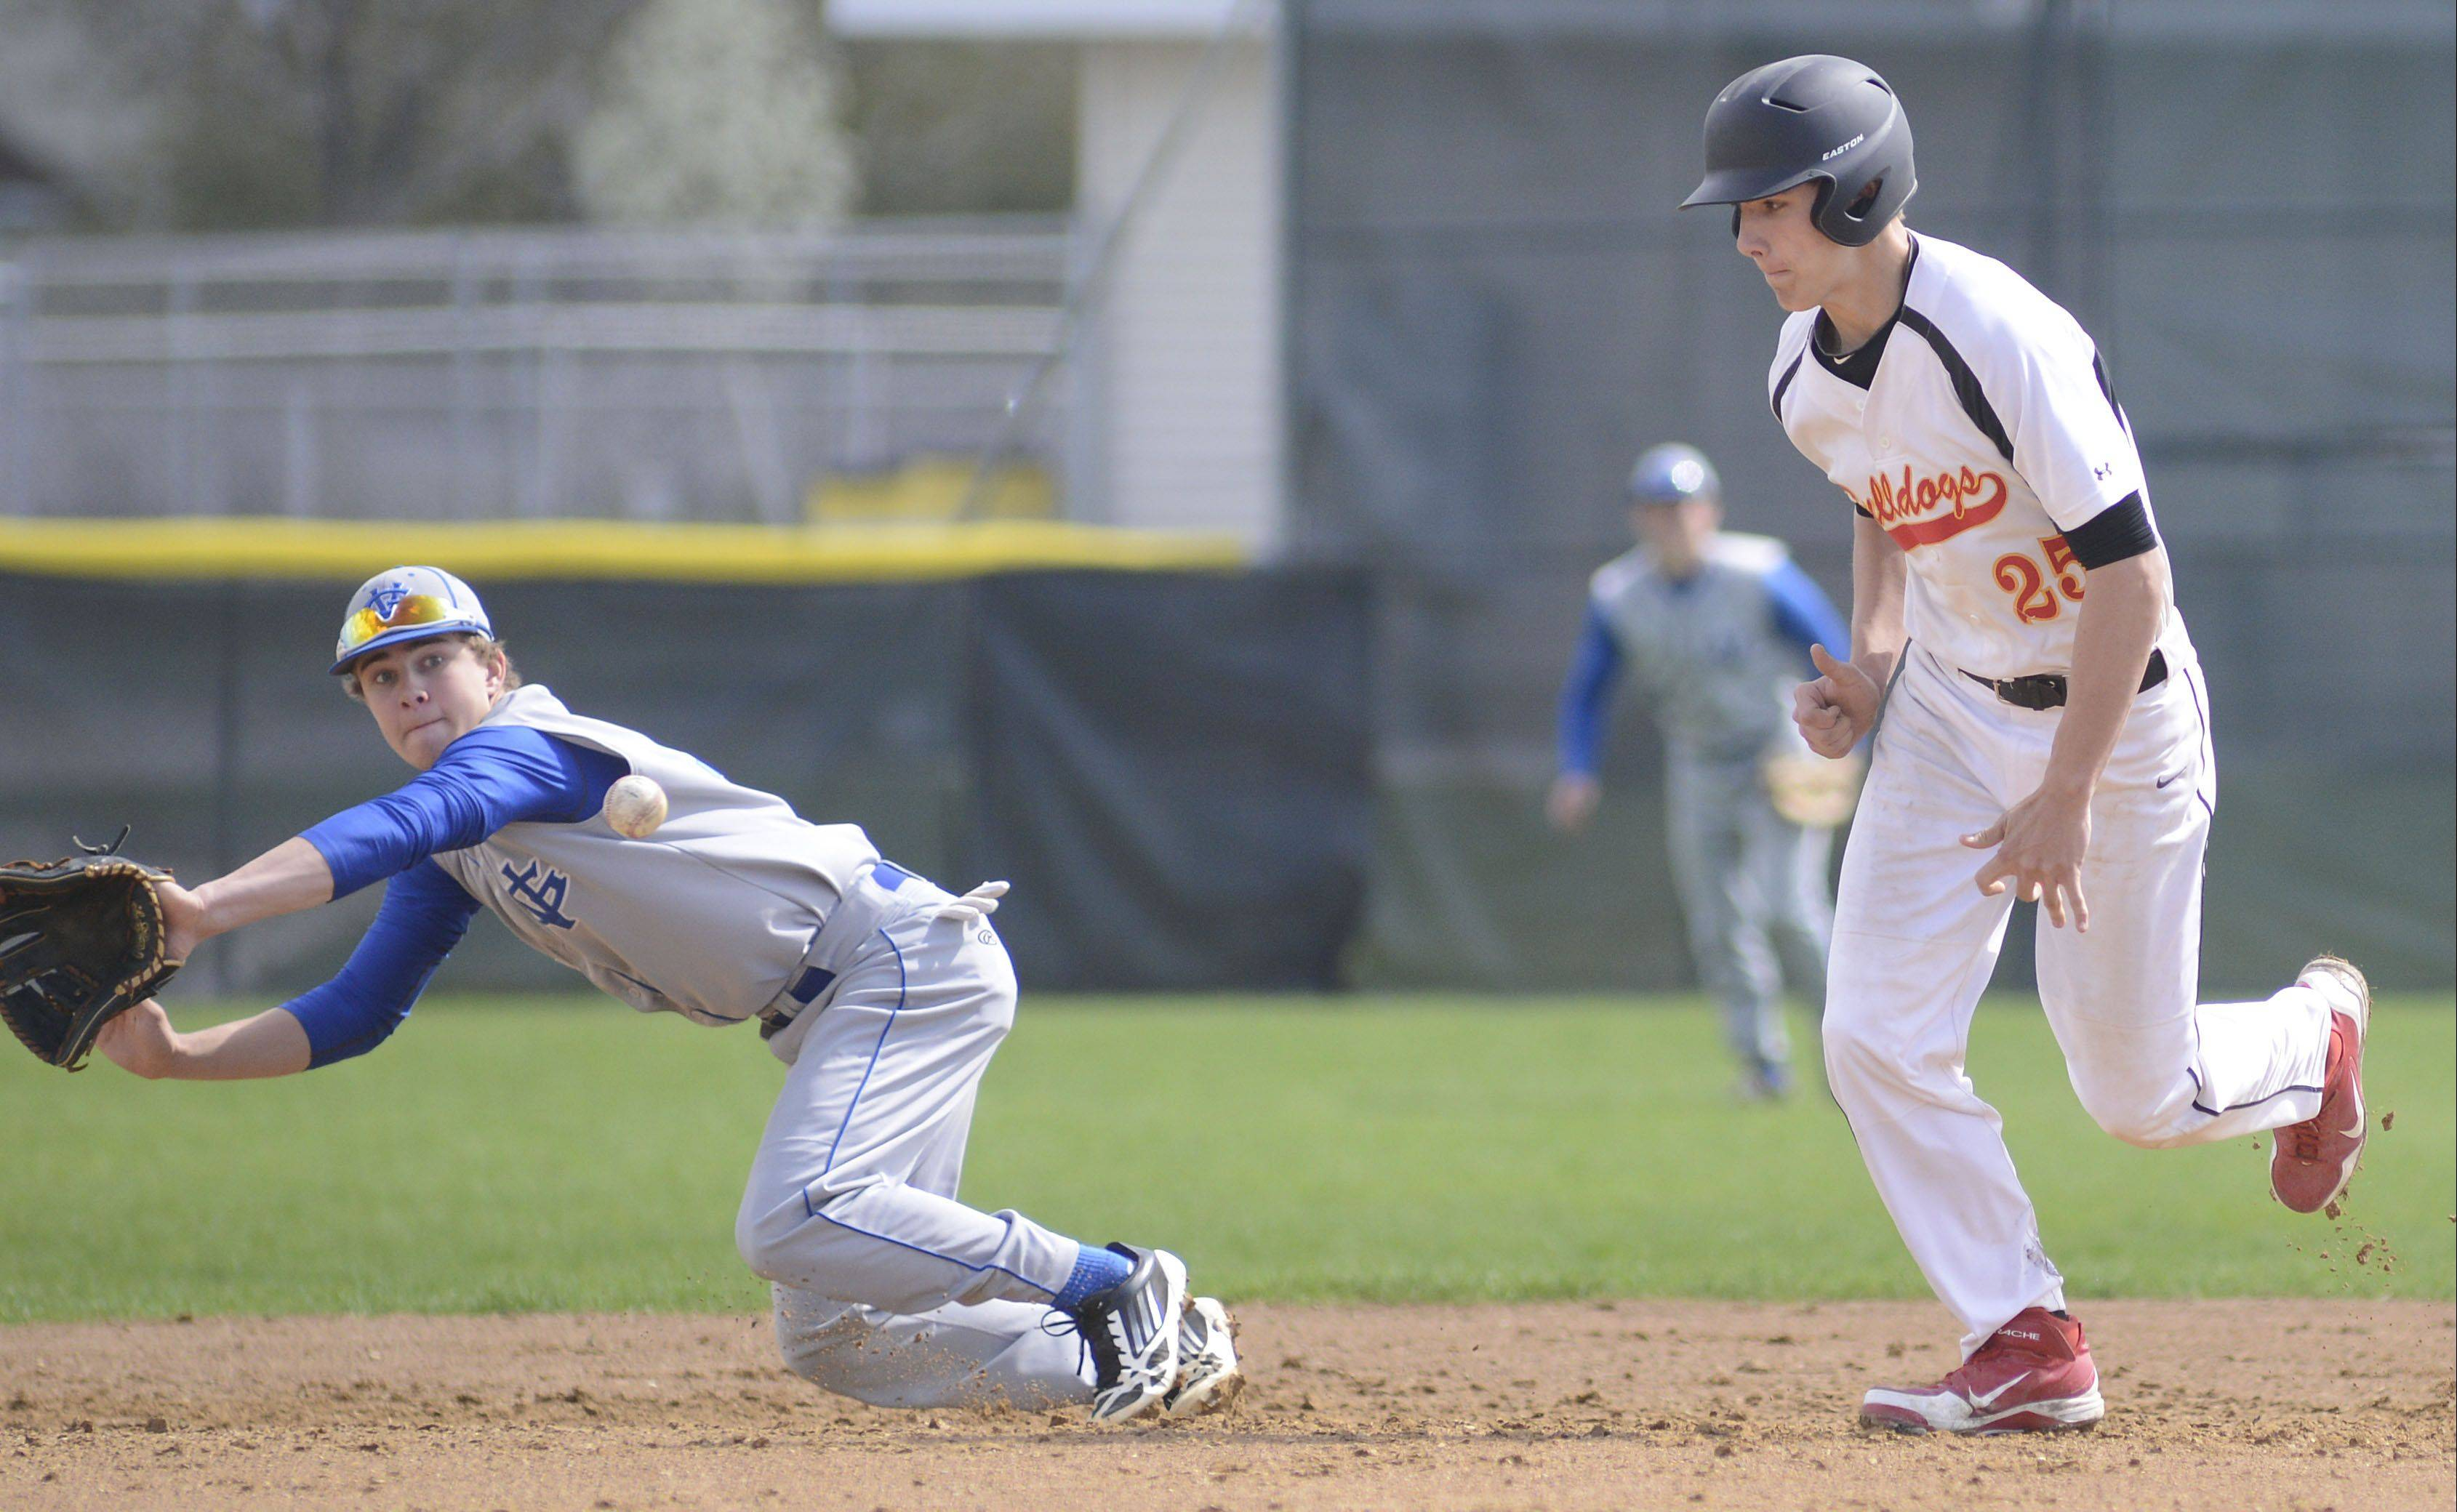 Geneva's Nick Derr dives for the ball as Batavia's Jordan Zwart takes off for third base in the second inning on Saturday.